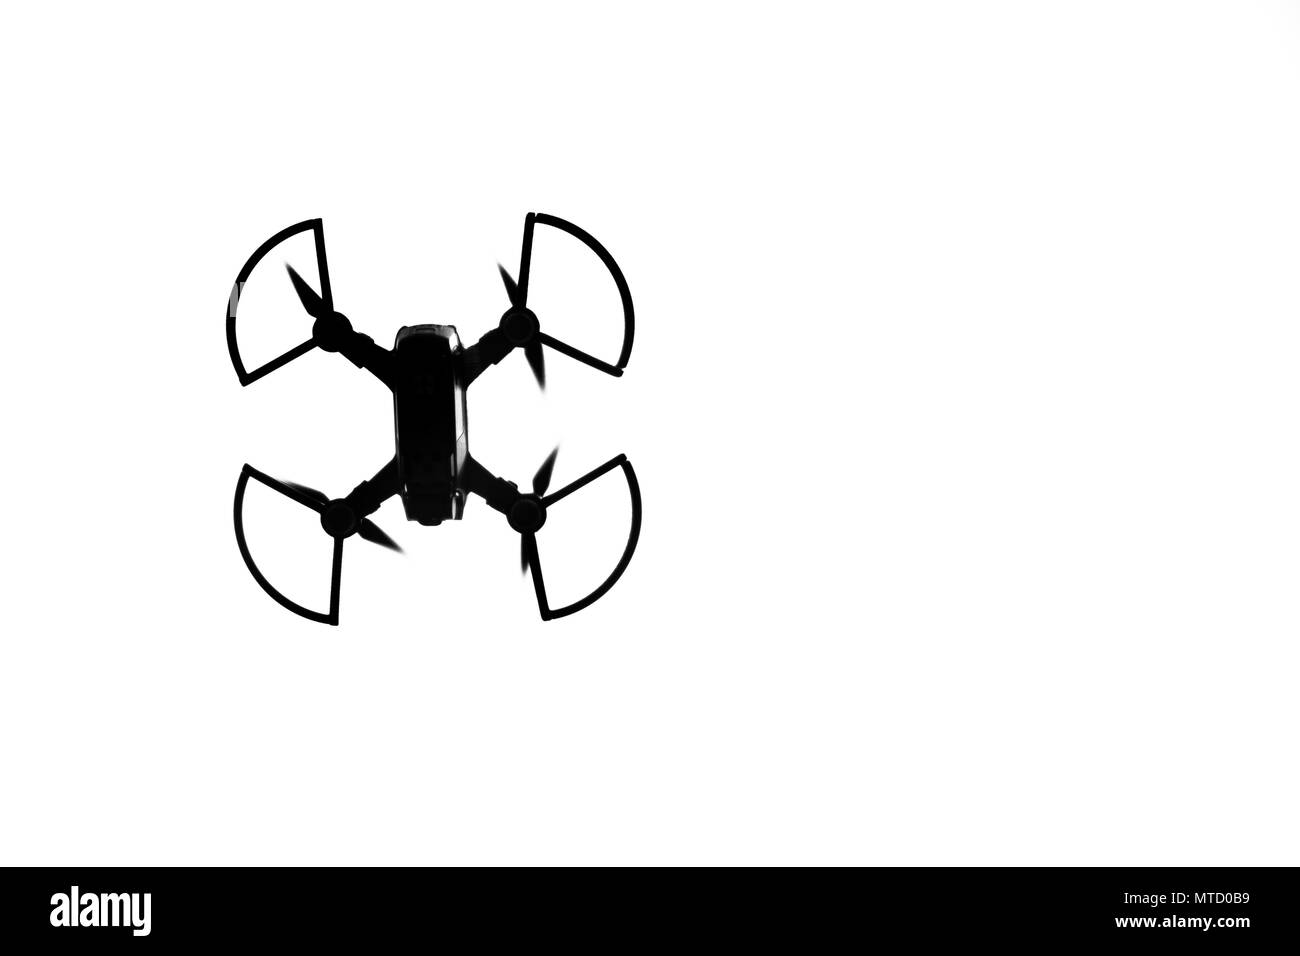 Silhouette of a drone in the sky. - Stock Image